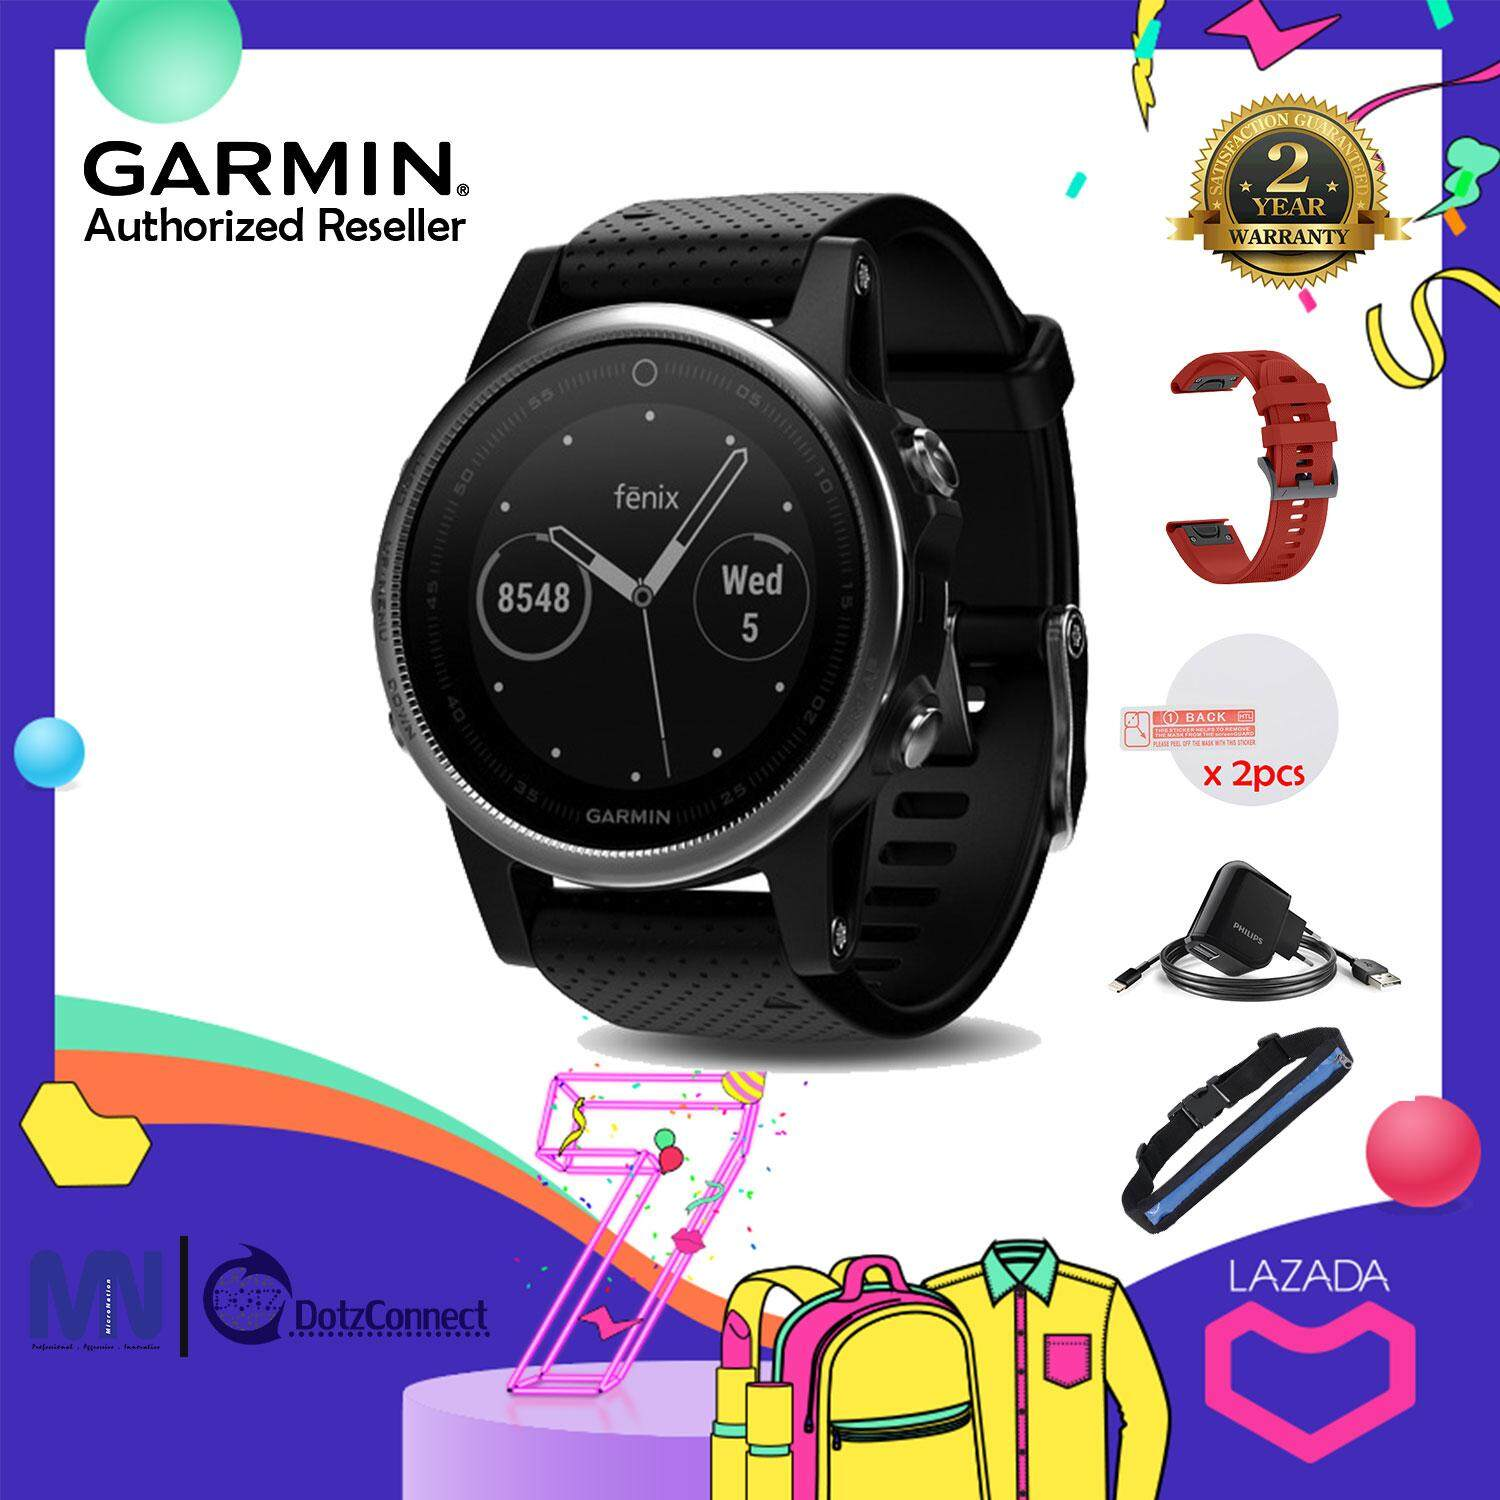 Garmin Fenix 5S Sapphire Black multisport GPS watch [Free] Philips Dual USB Car Charger with Lightning Cable